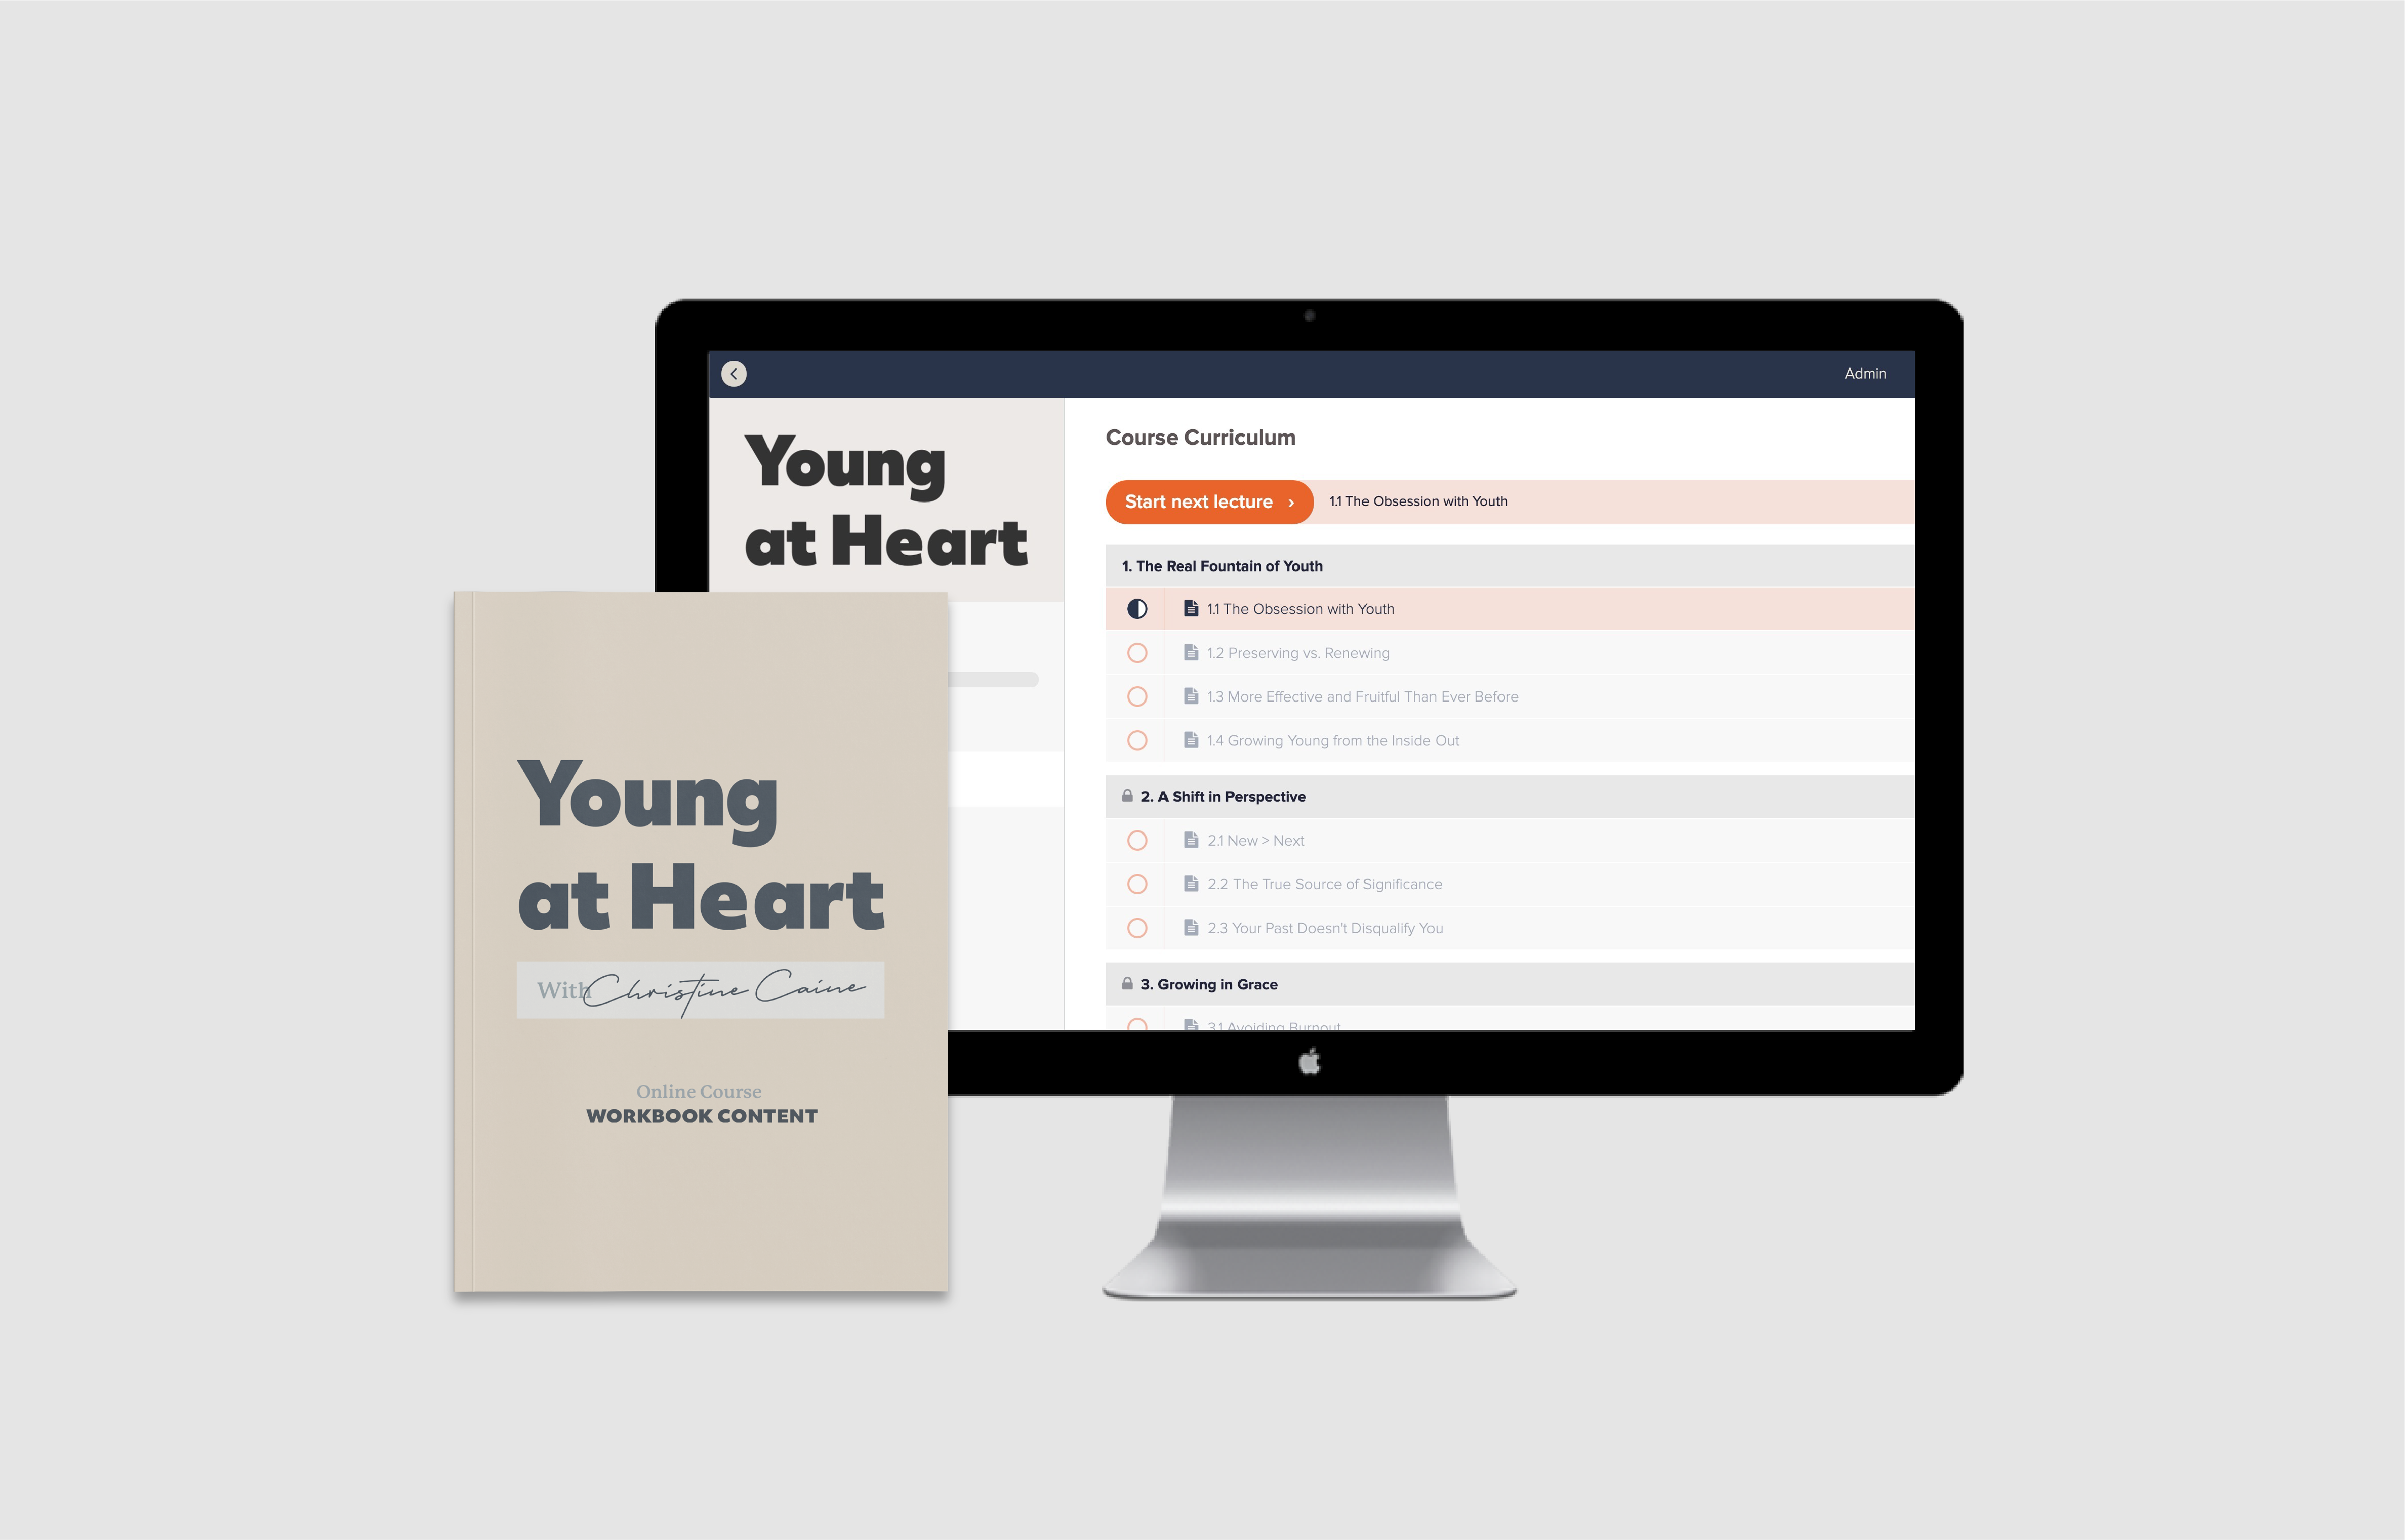 Young At Heart Course by Christine Caine